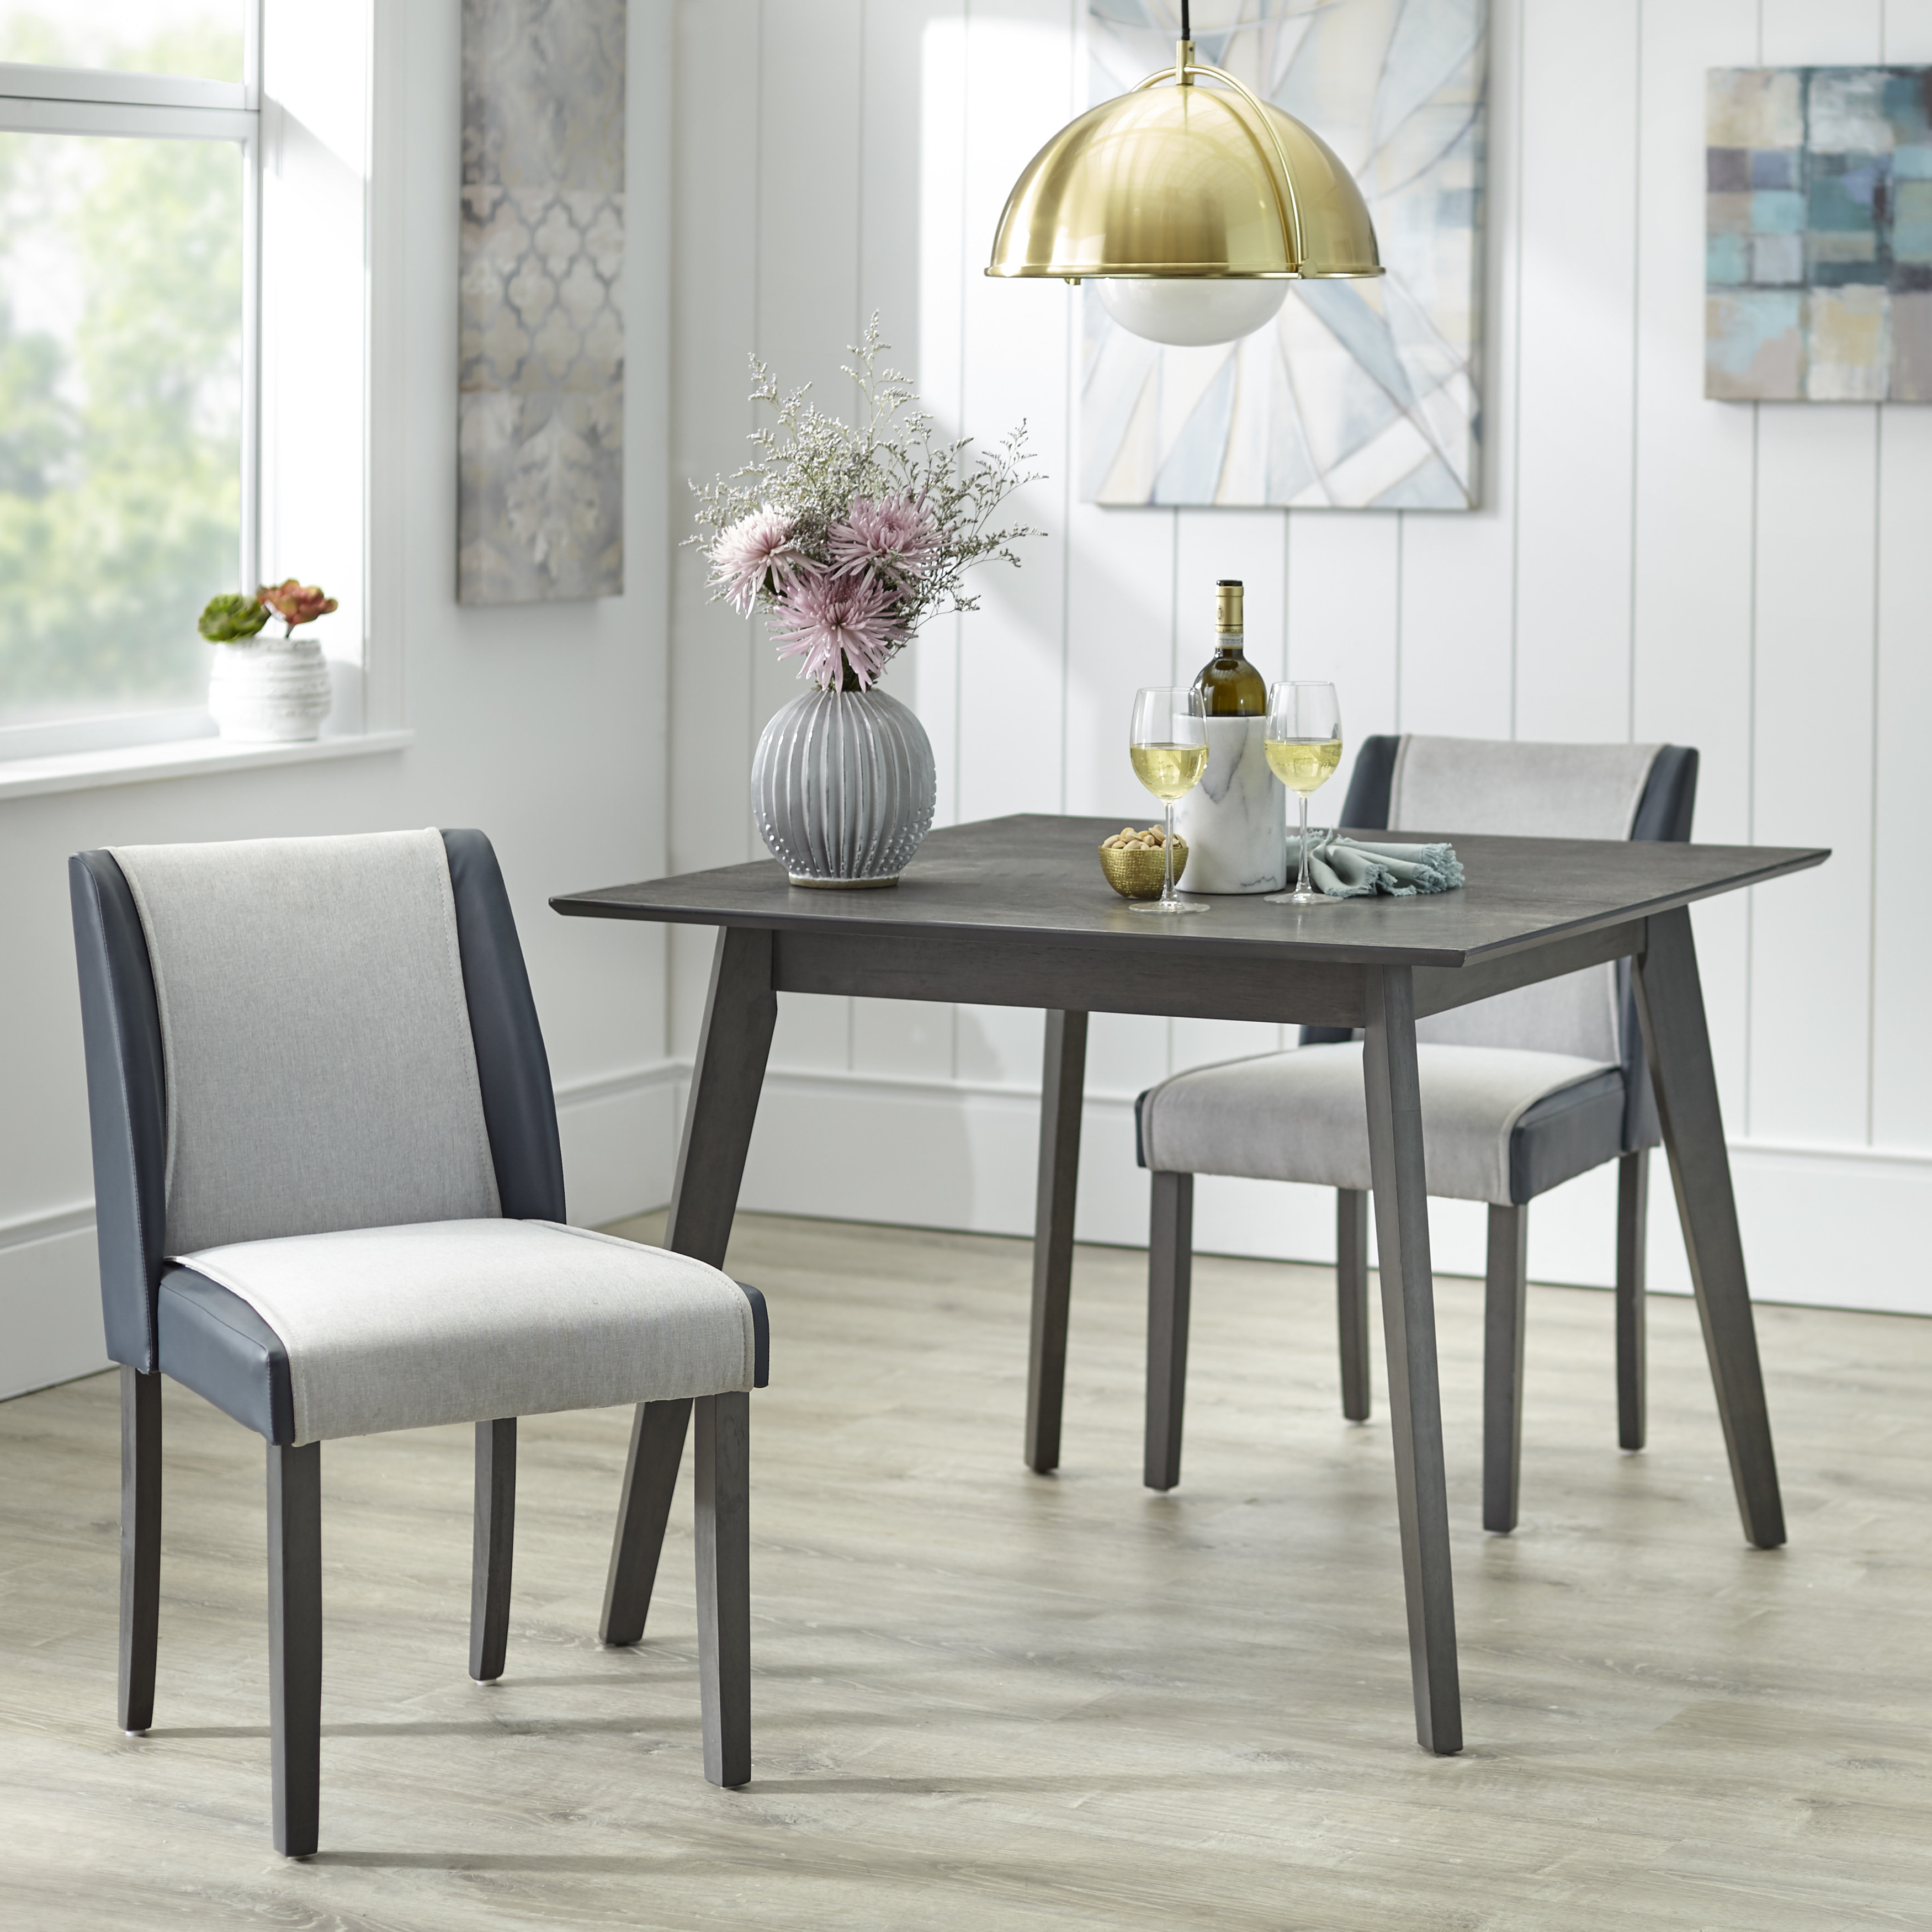 Baillie 3 Piece Dining Sets Regarding Most Recent Beckley 3 Piece Dining Set (Gallery 3 of 20)